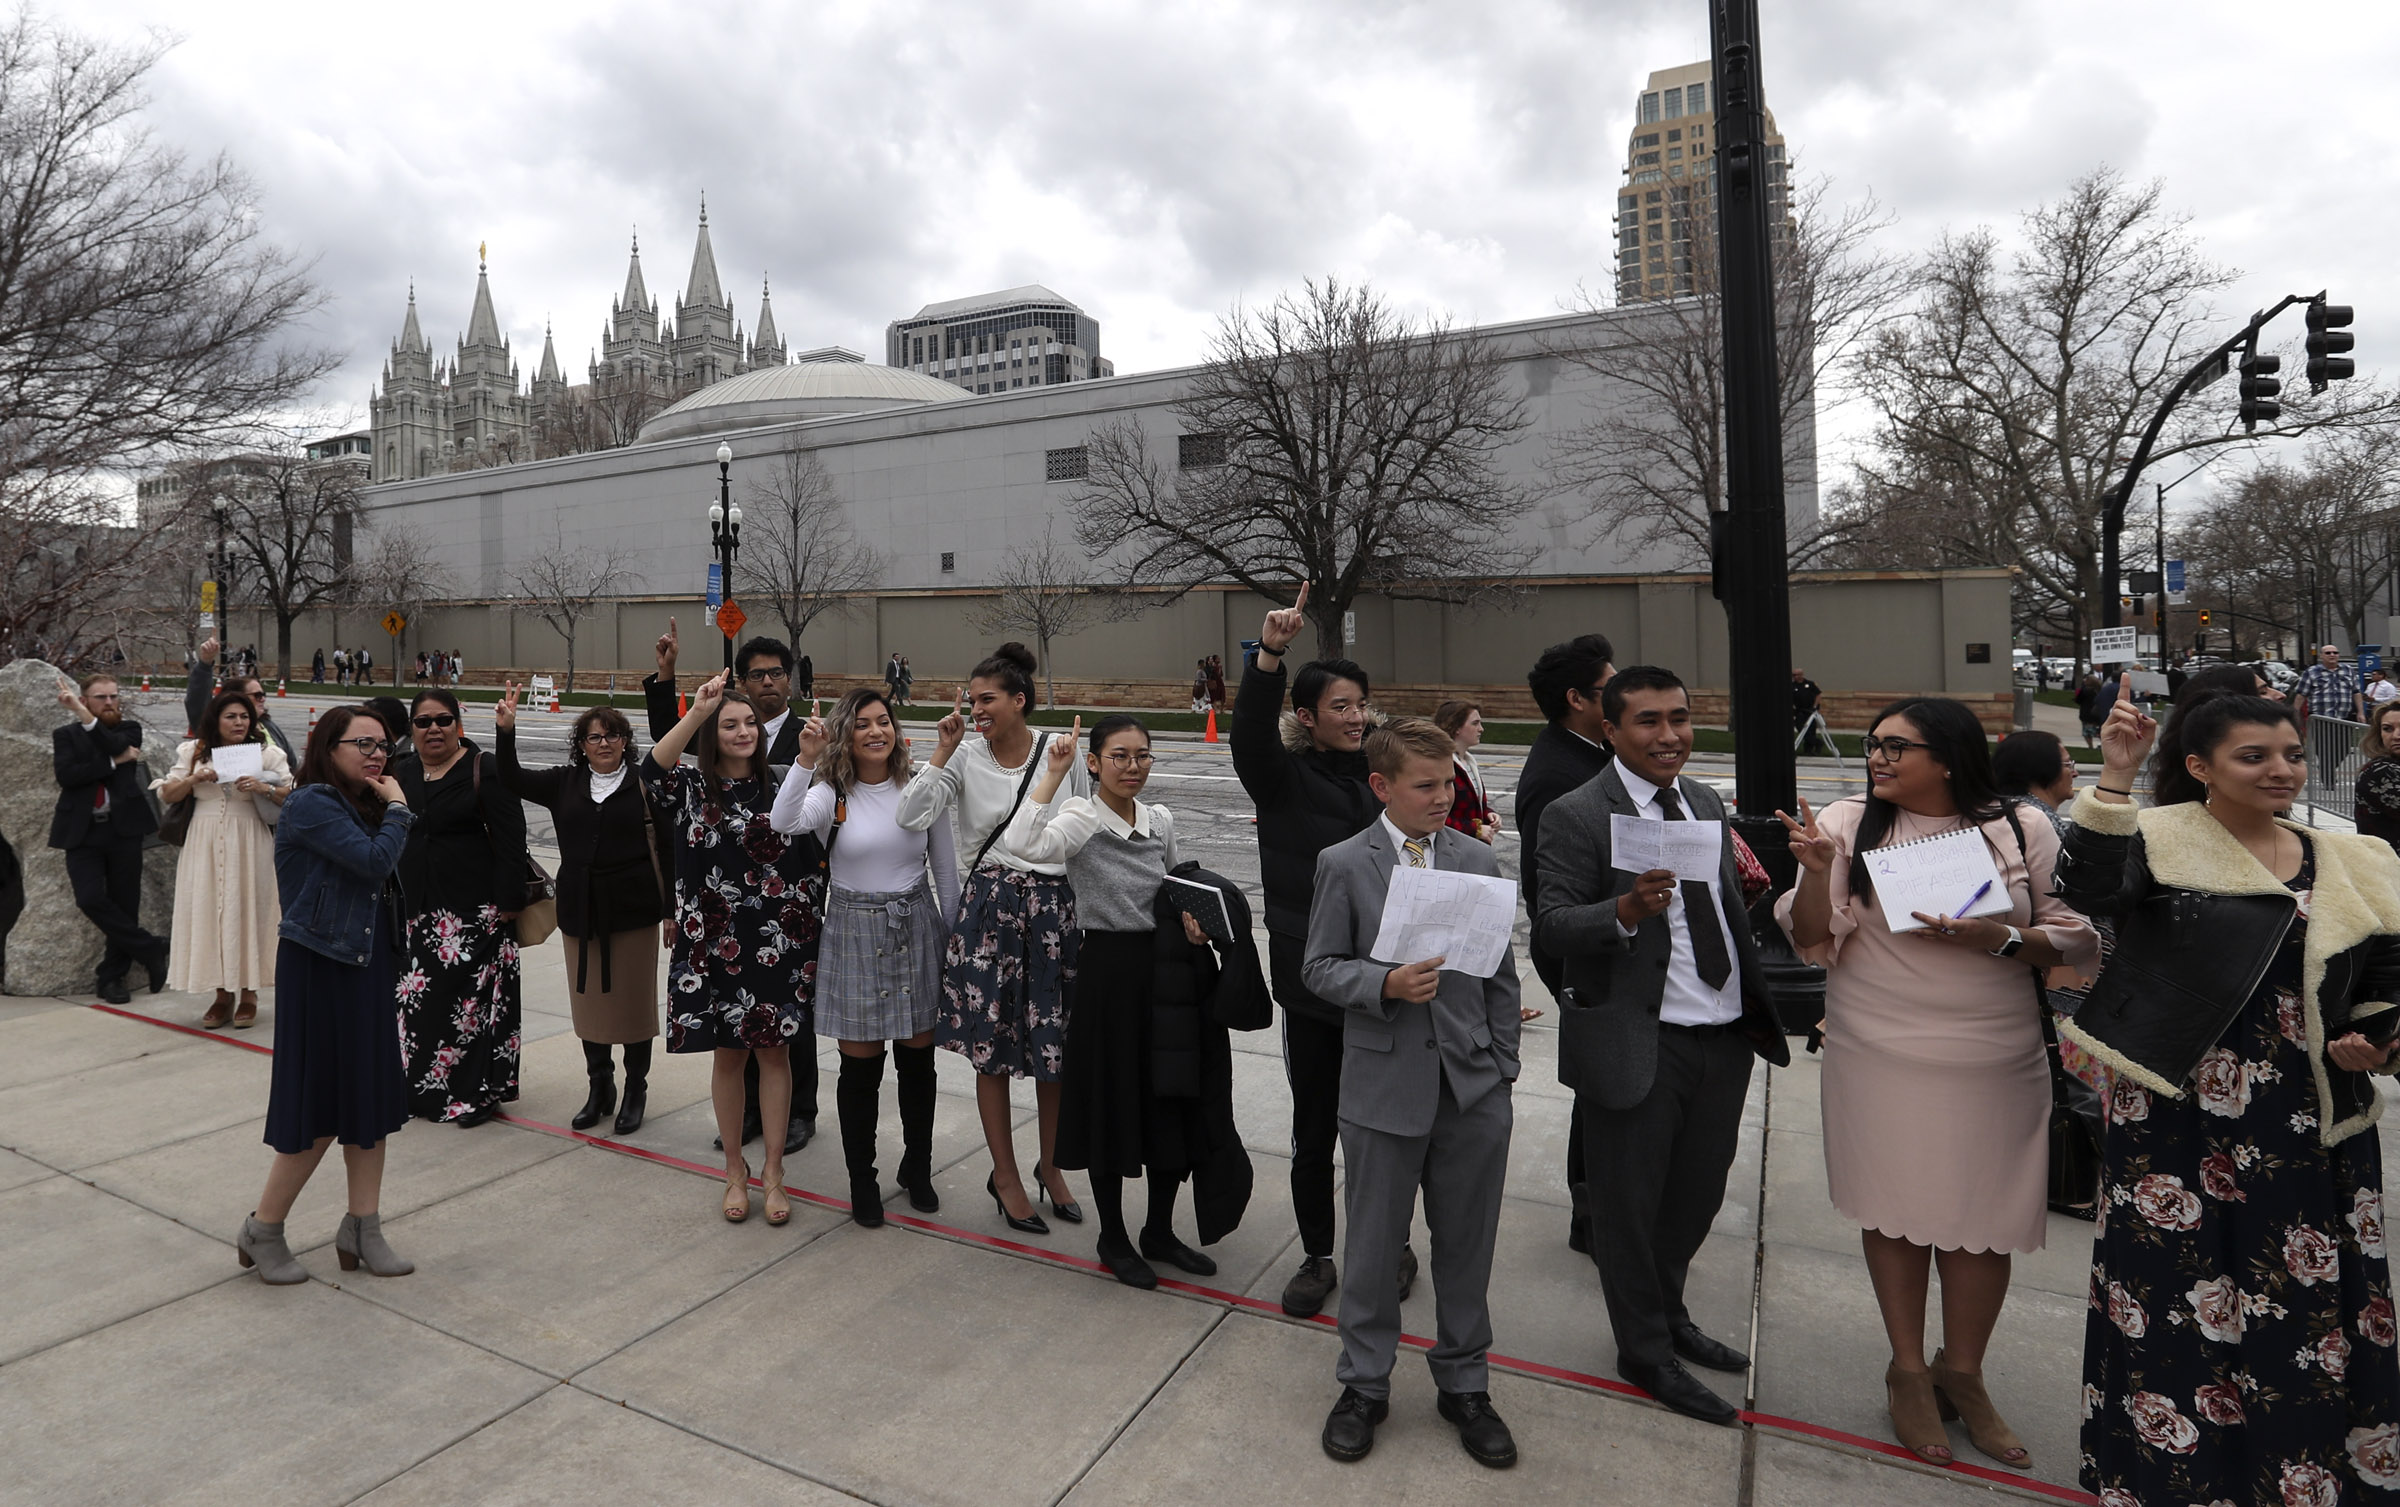 Conferencegoers wait on the sidewalk outside the Conference Center as they try and get tickets to the Saturday afternoon session of the 189th Annual General Conference of The Church of Jesus Christ of Latter-day Saints in Salt Lake City on Saturday, April 6, 2019.